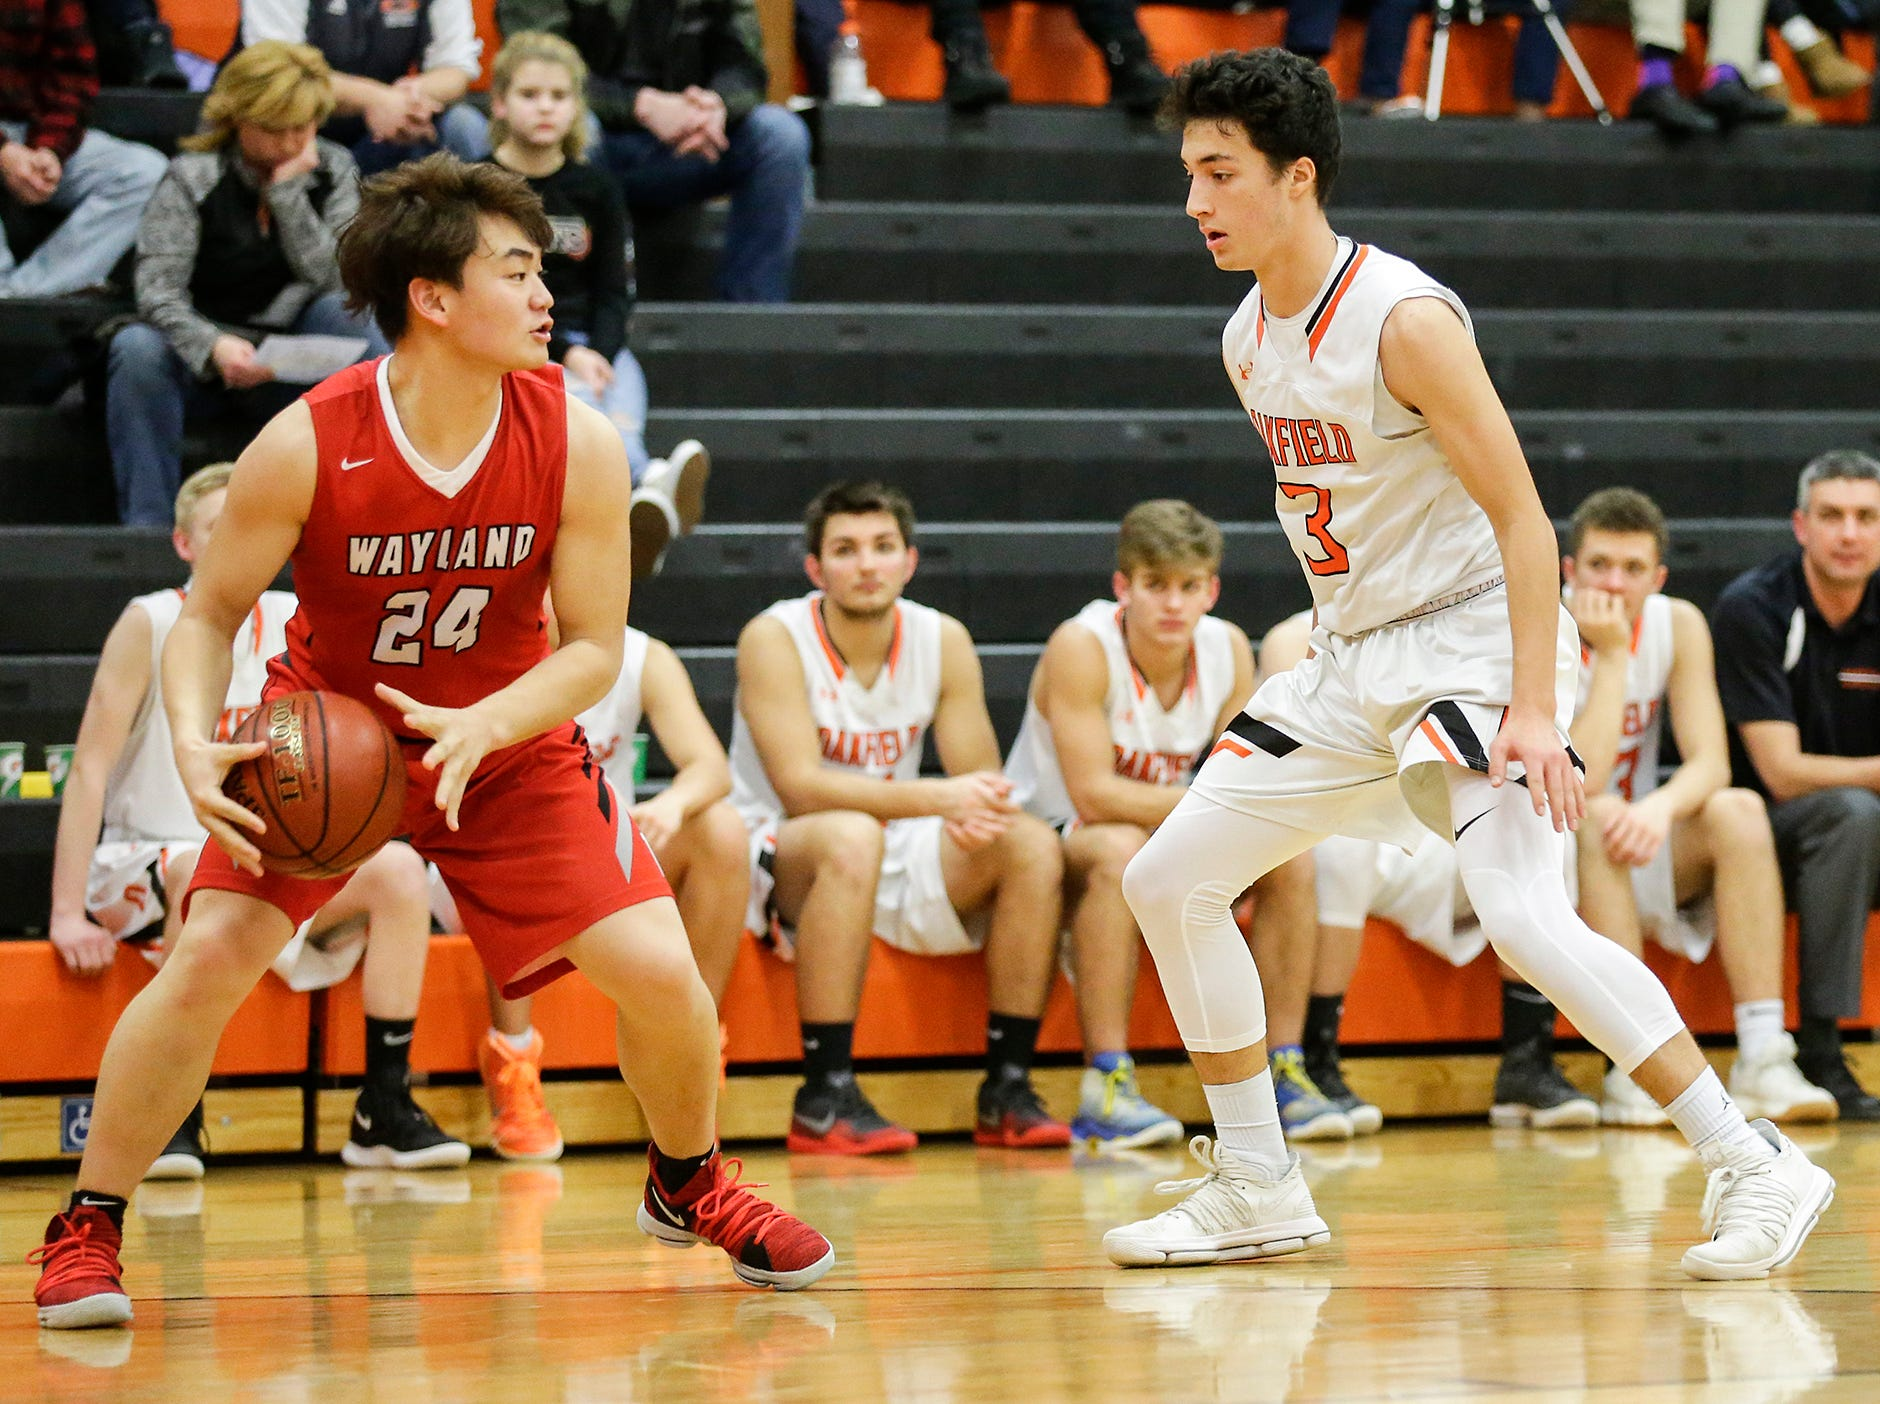 Oakfield High School boys basketball's Jacob Cedar defends against Wayland Academy's Oscar Sun January 11, 2019 during their game in Oakfield. Oakfield won the game 56-48. Doug Raflik/USA TODAY NETWORK-Wisconsin